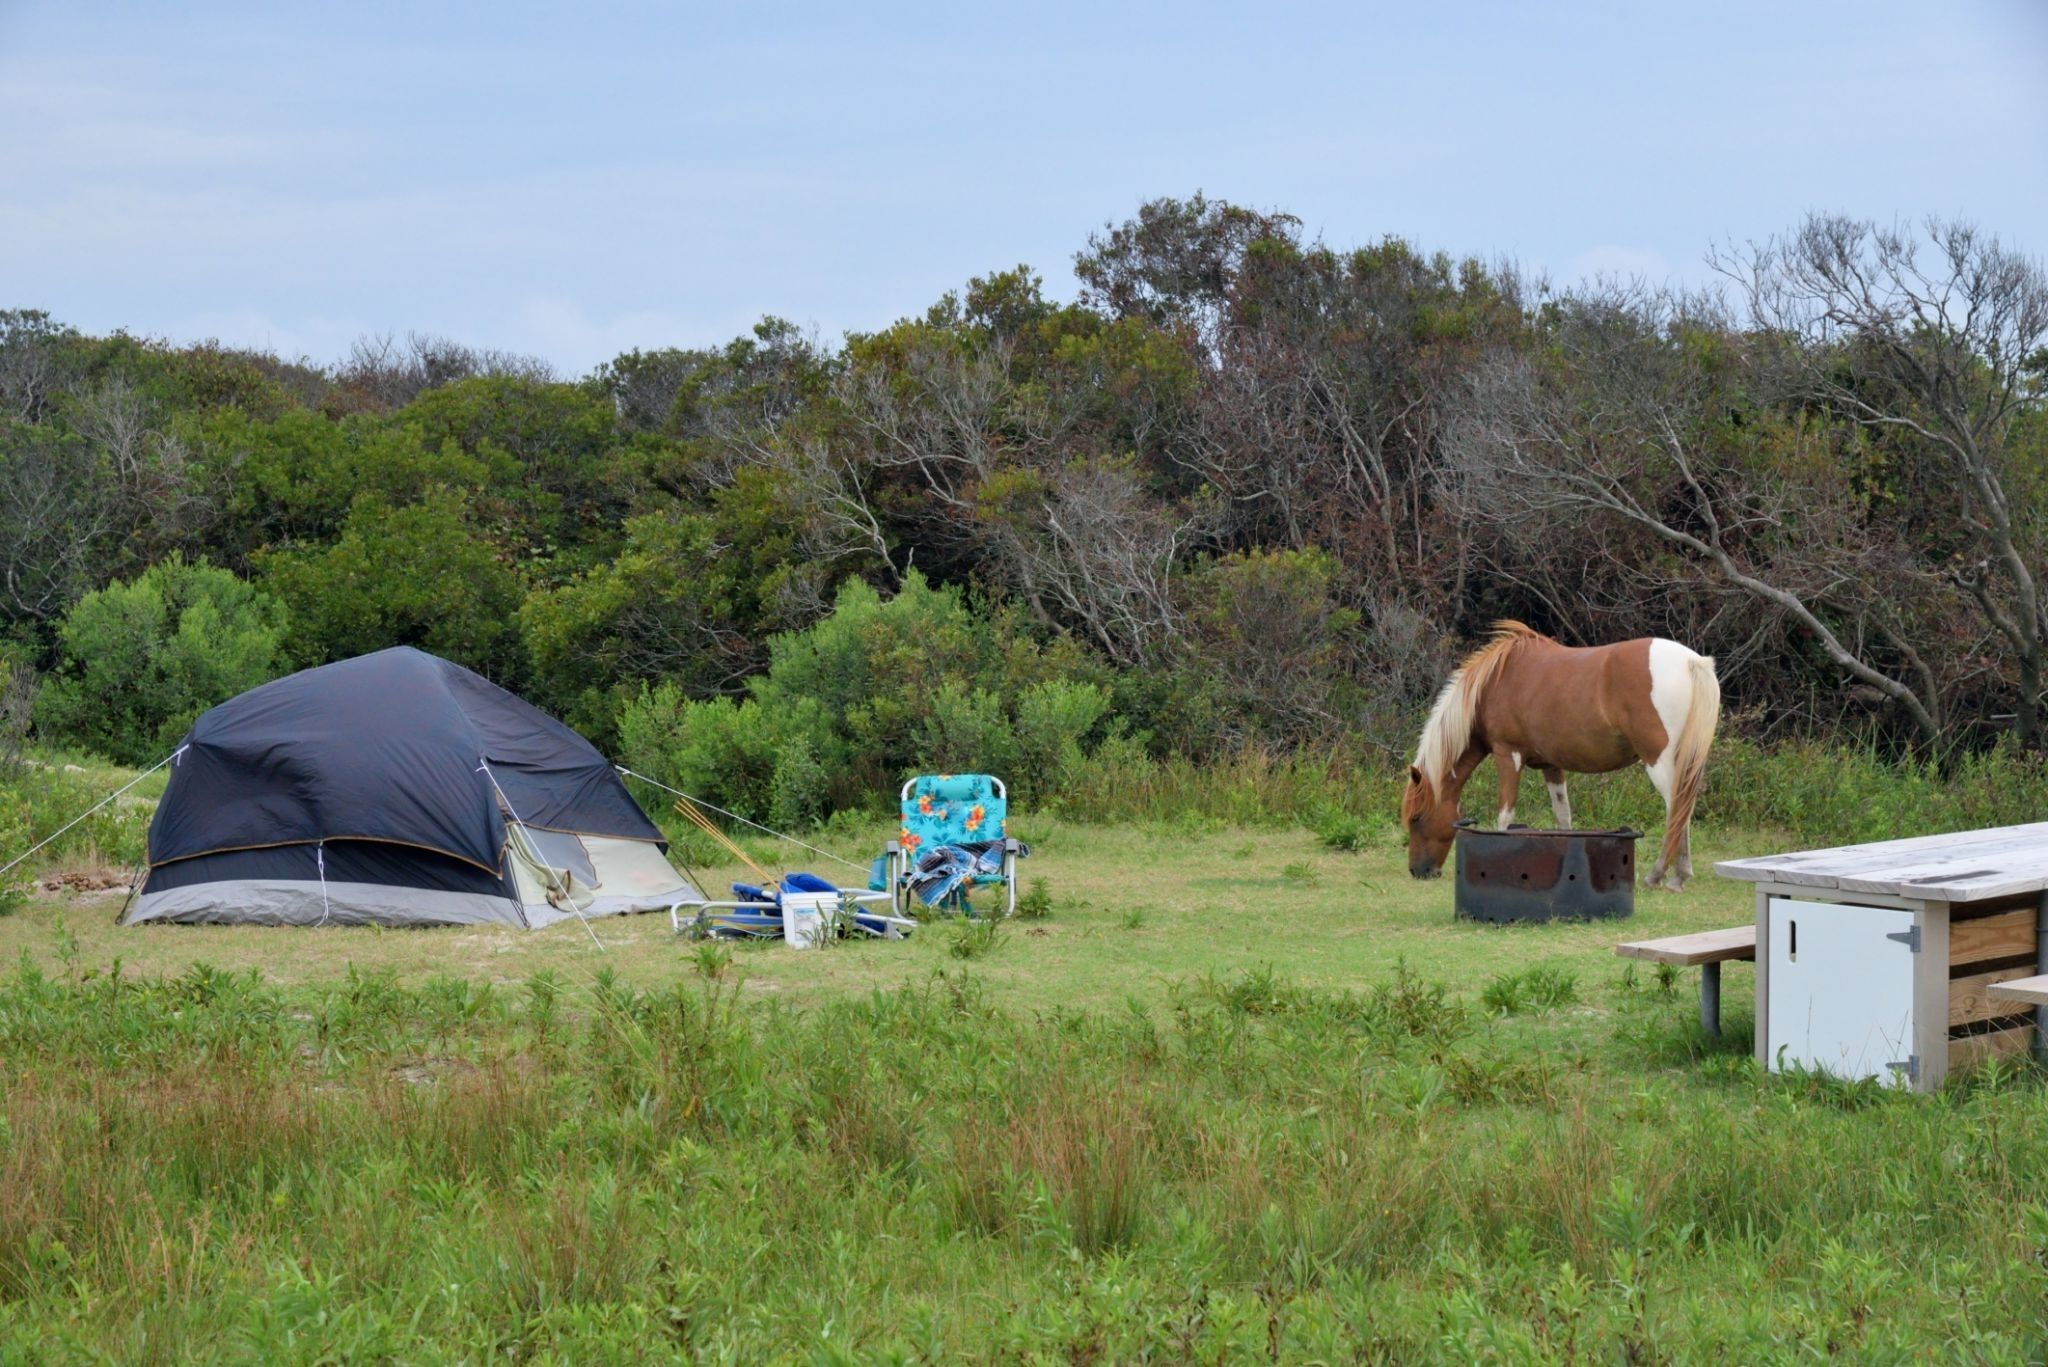 5 Tips on How to Camp with Your Horse